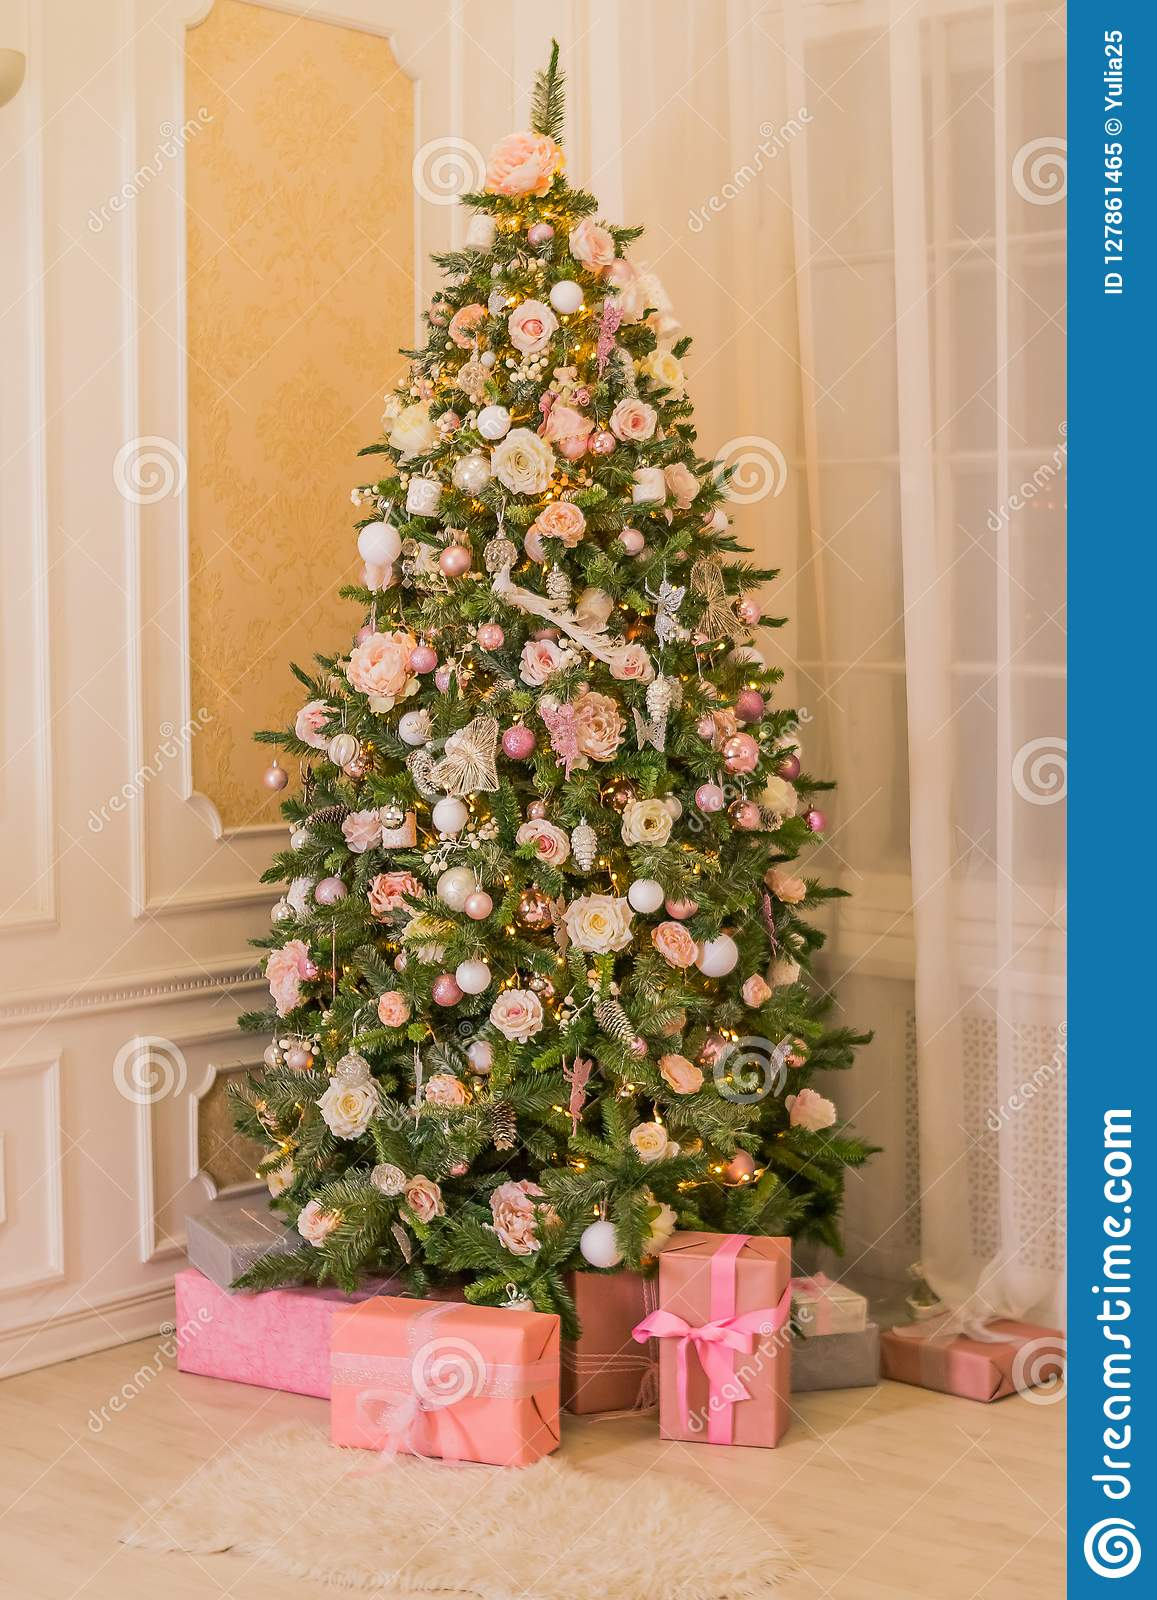 Pastel Christmas Elegant Christmas Tree With Decorations And Gifts